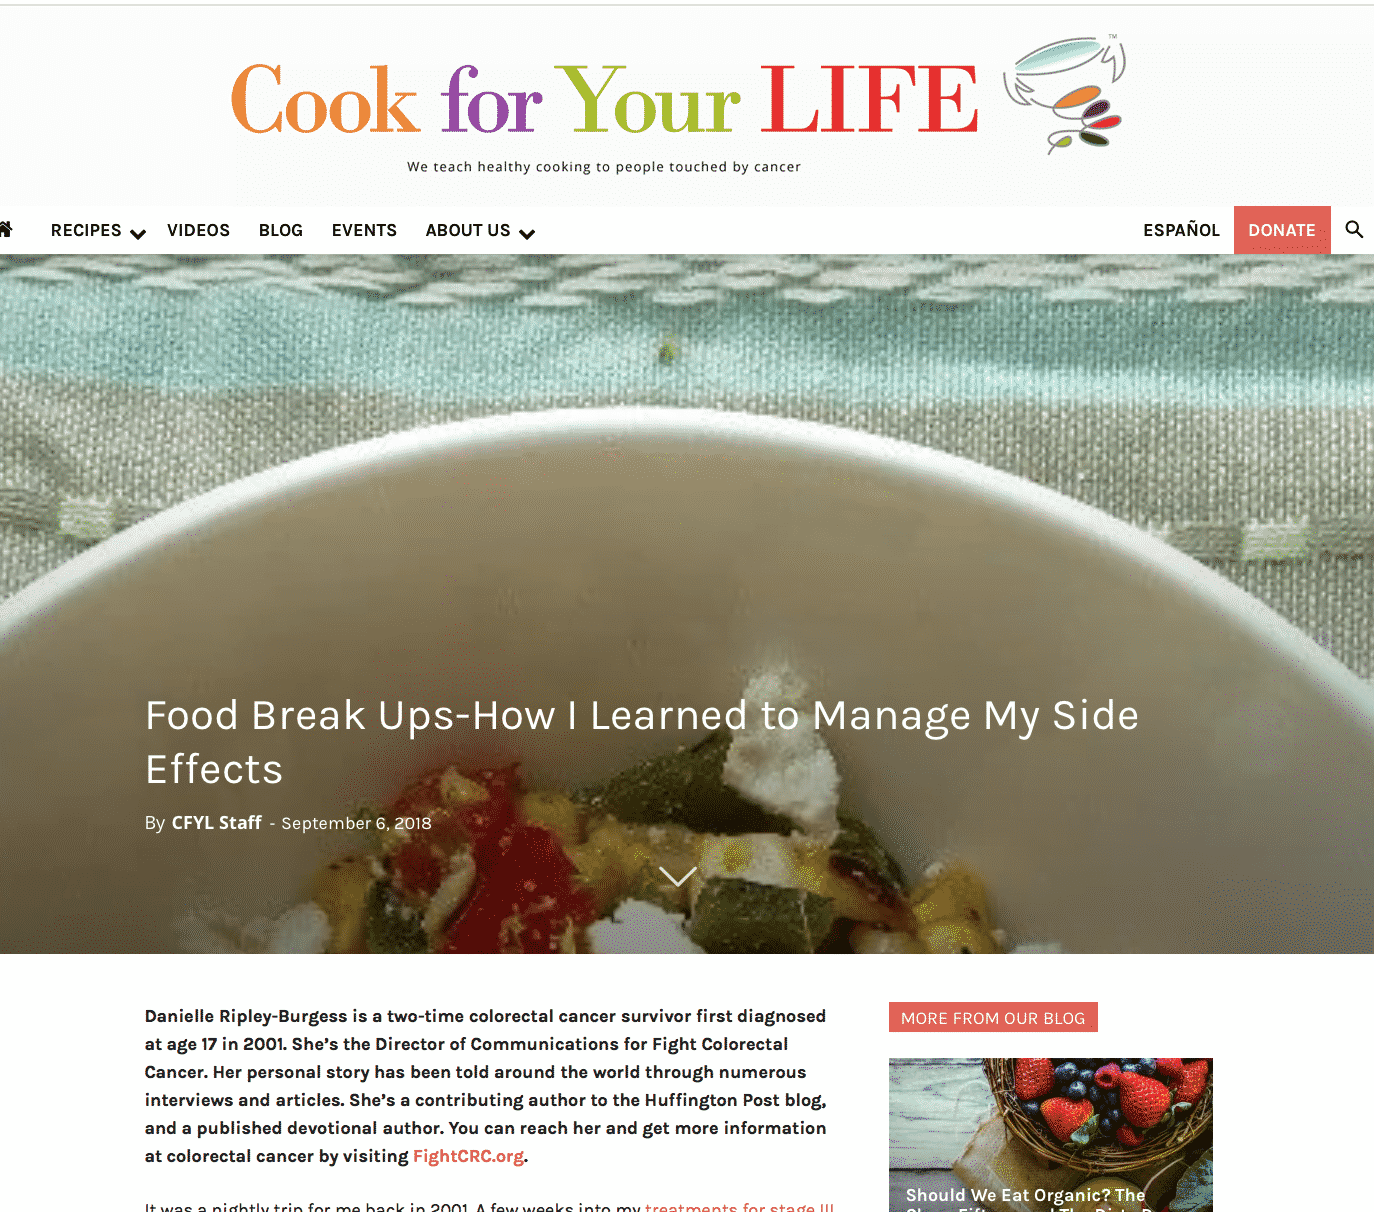 cook-for-your-life-blog-danielle-ripley-burgess